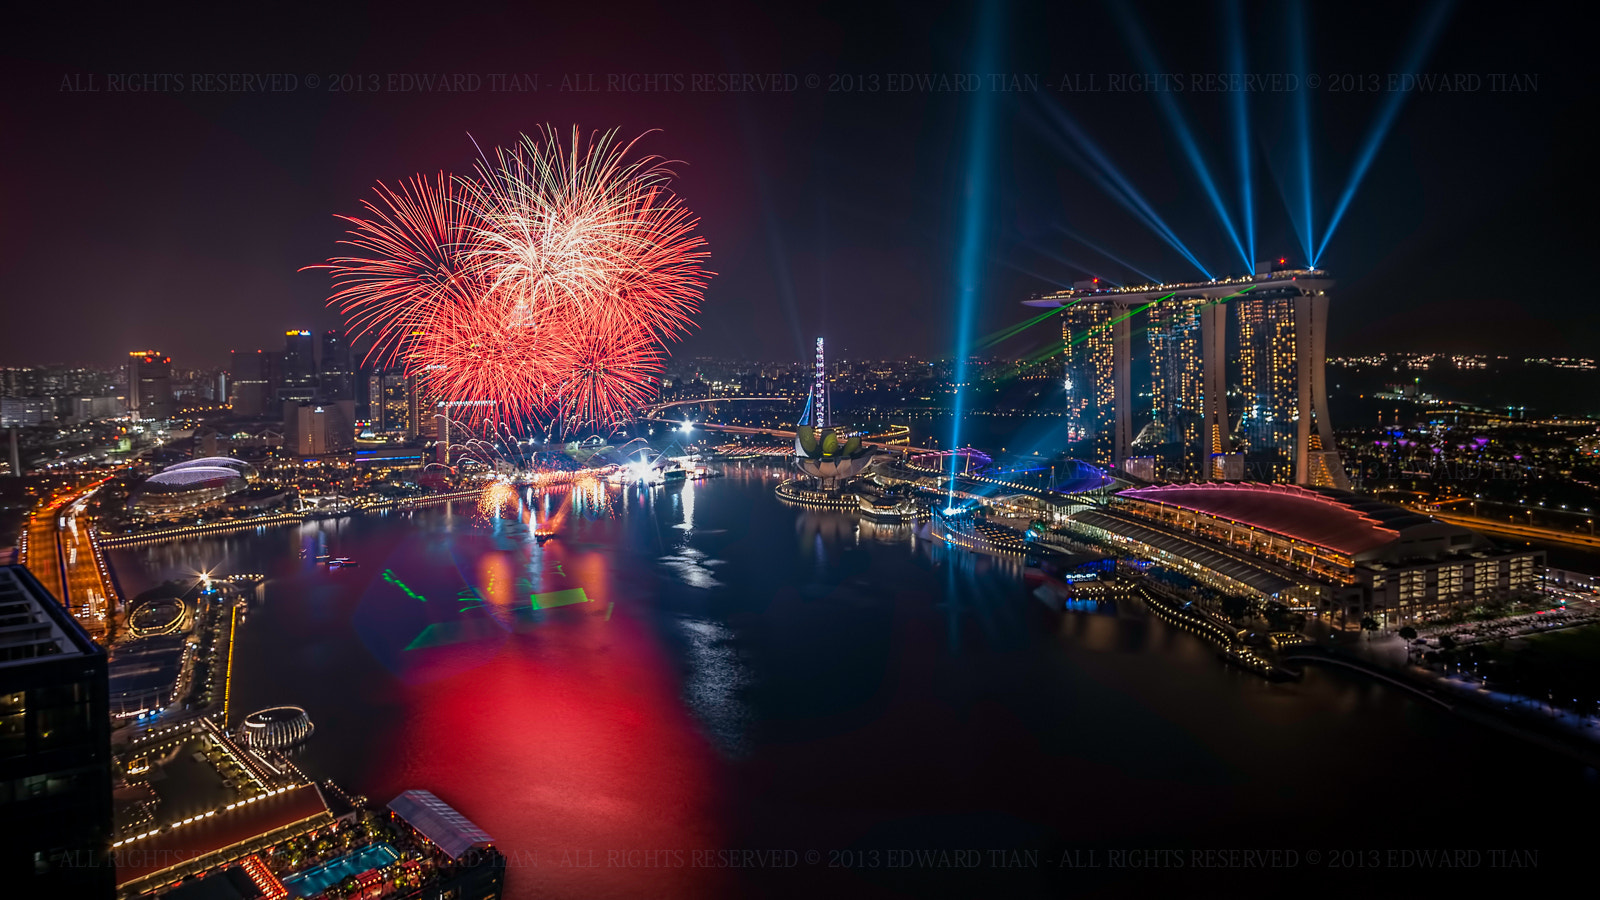 Photograph Singapore by Edward Tian on 500px